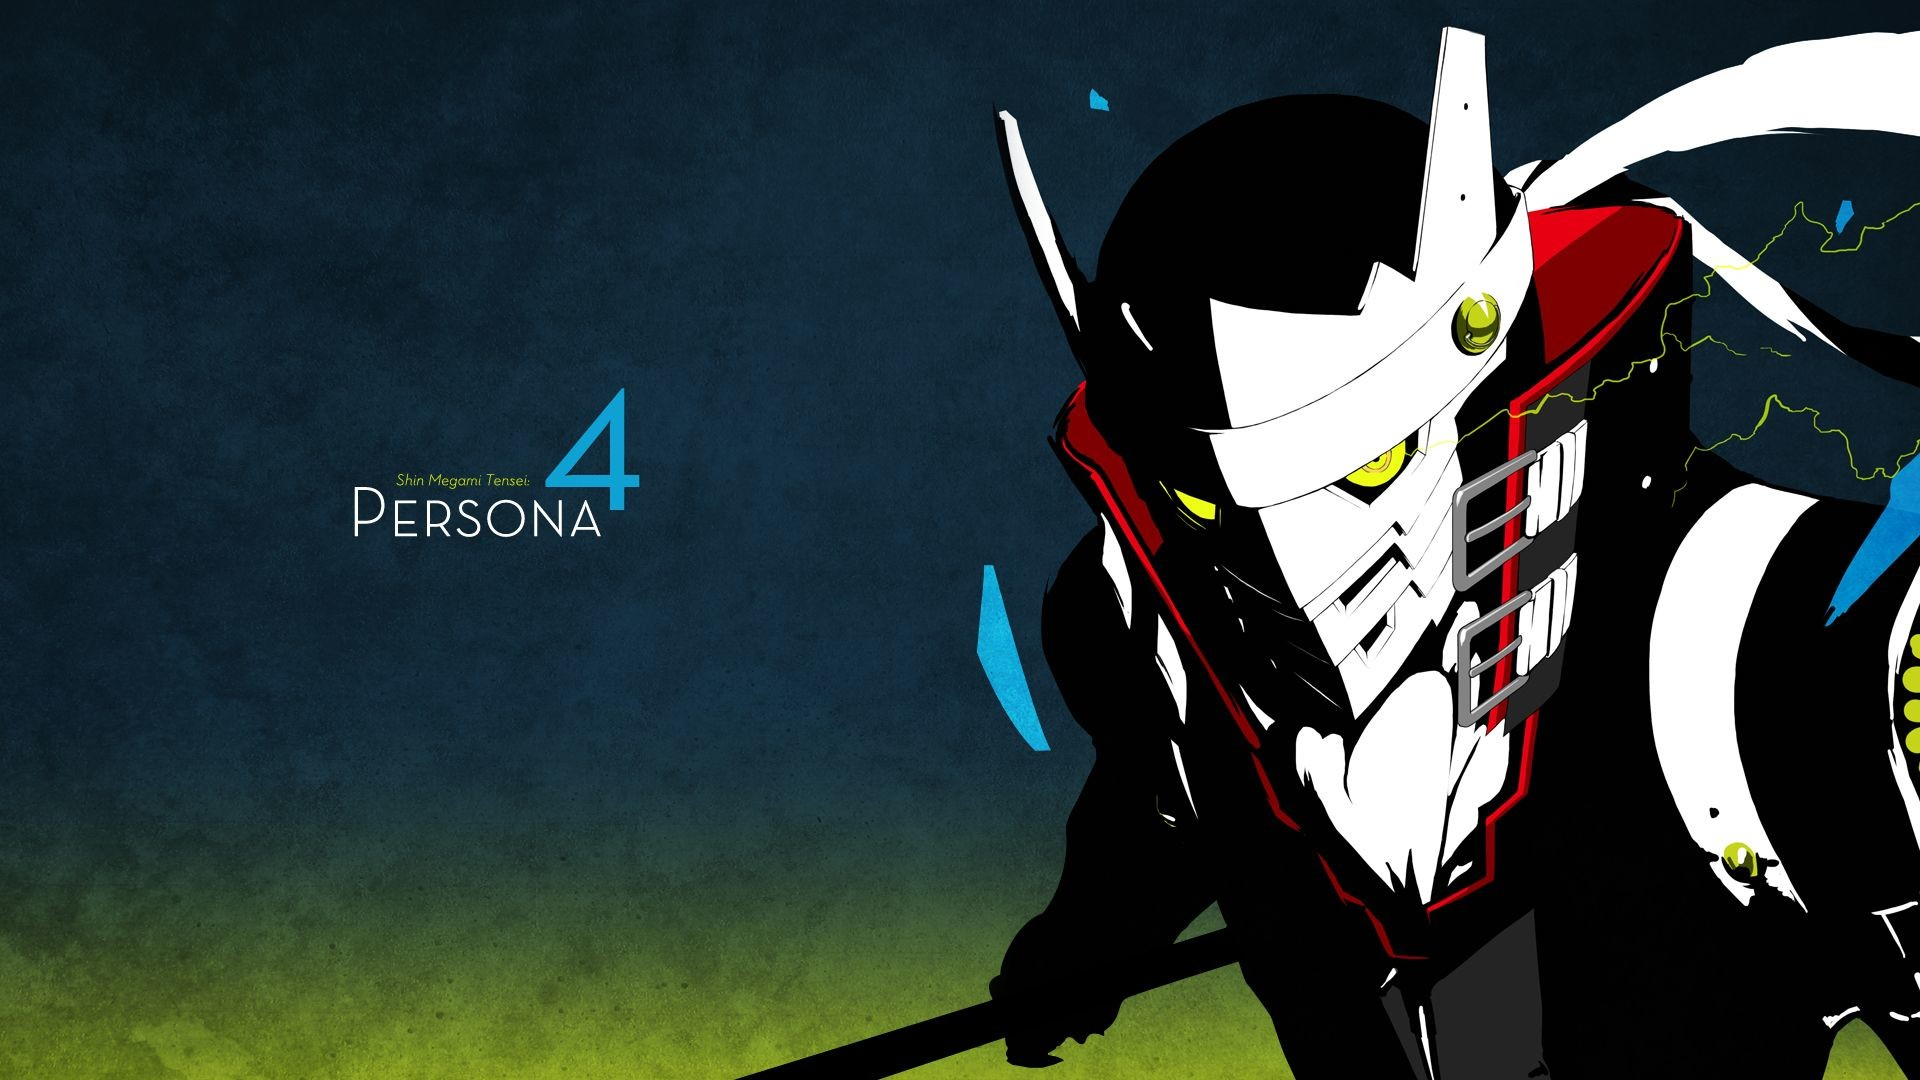 105 Persona 4 HD Wallpapers